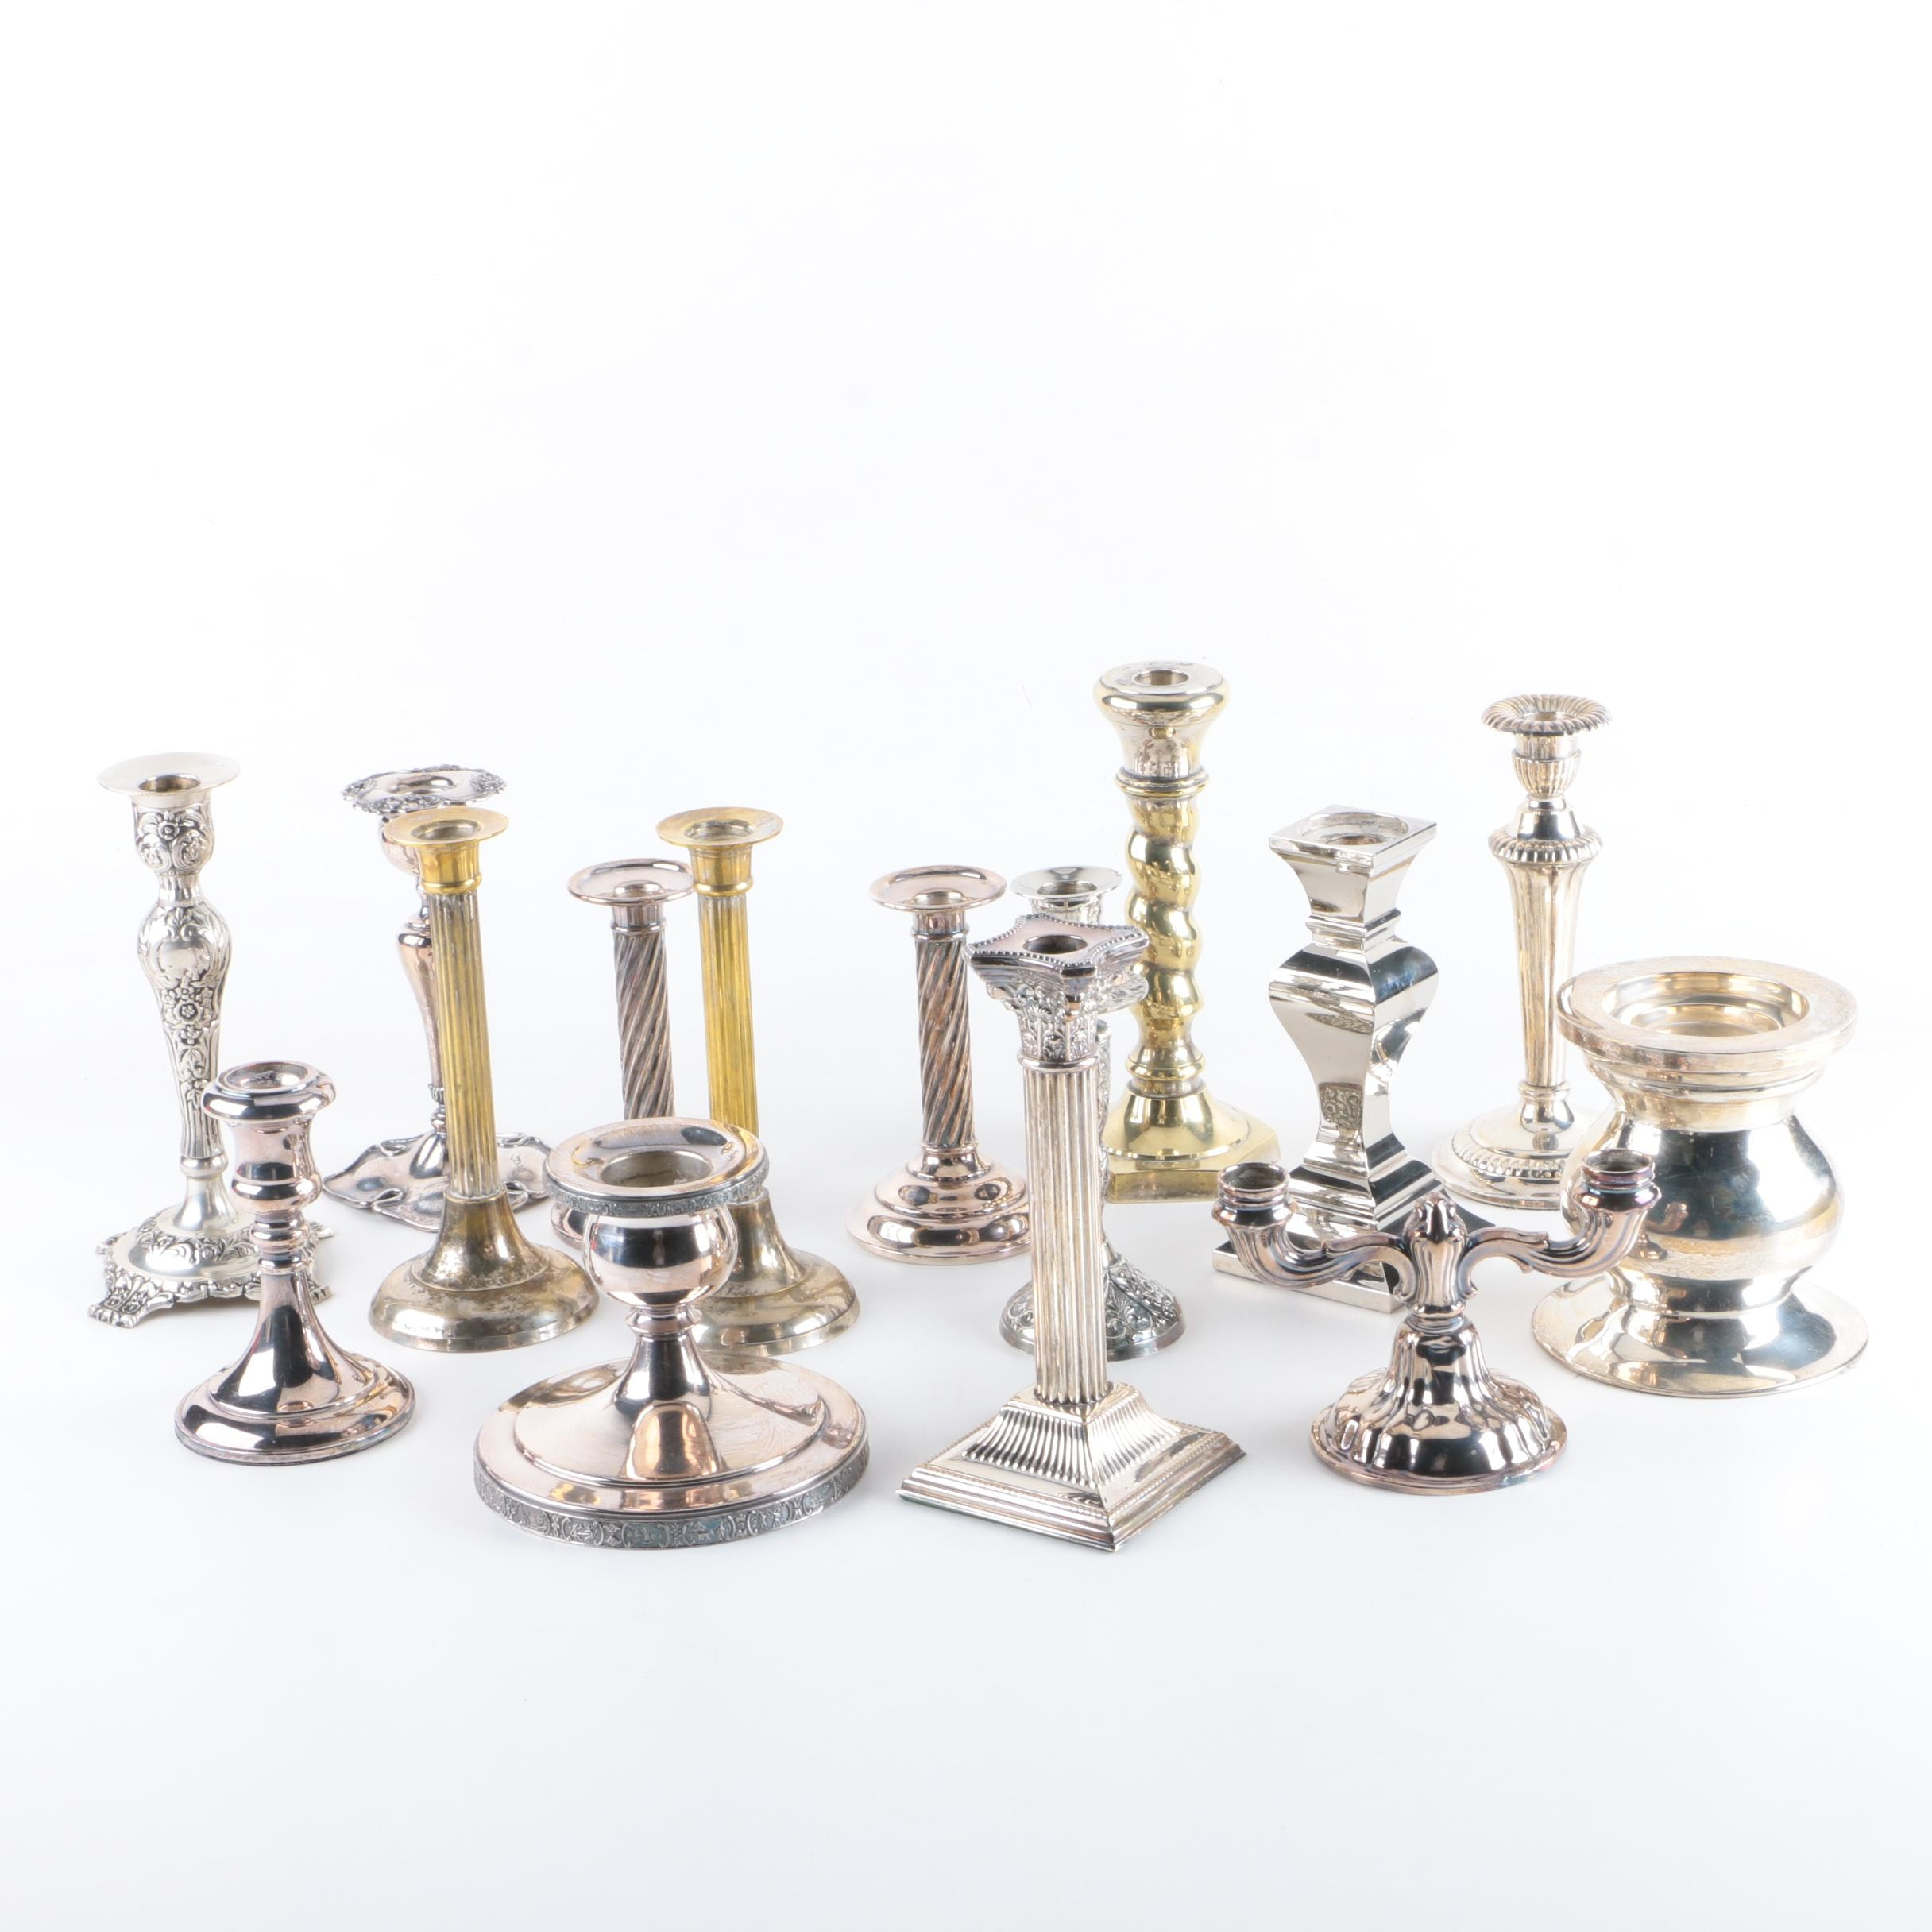 Silver Plate Candleholder and Candlestick Collection